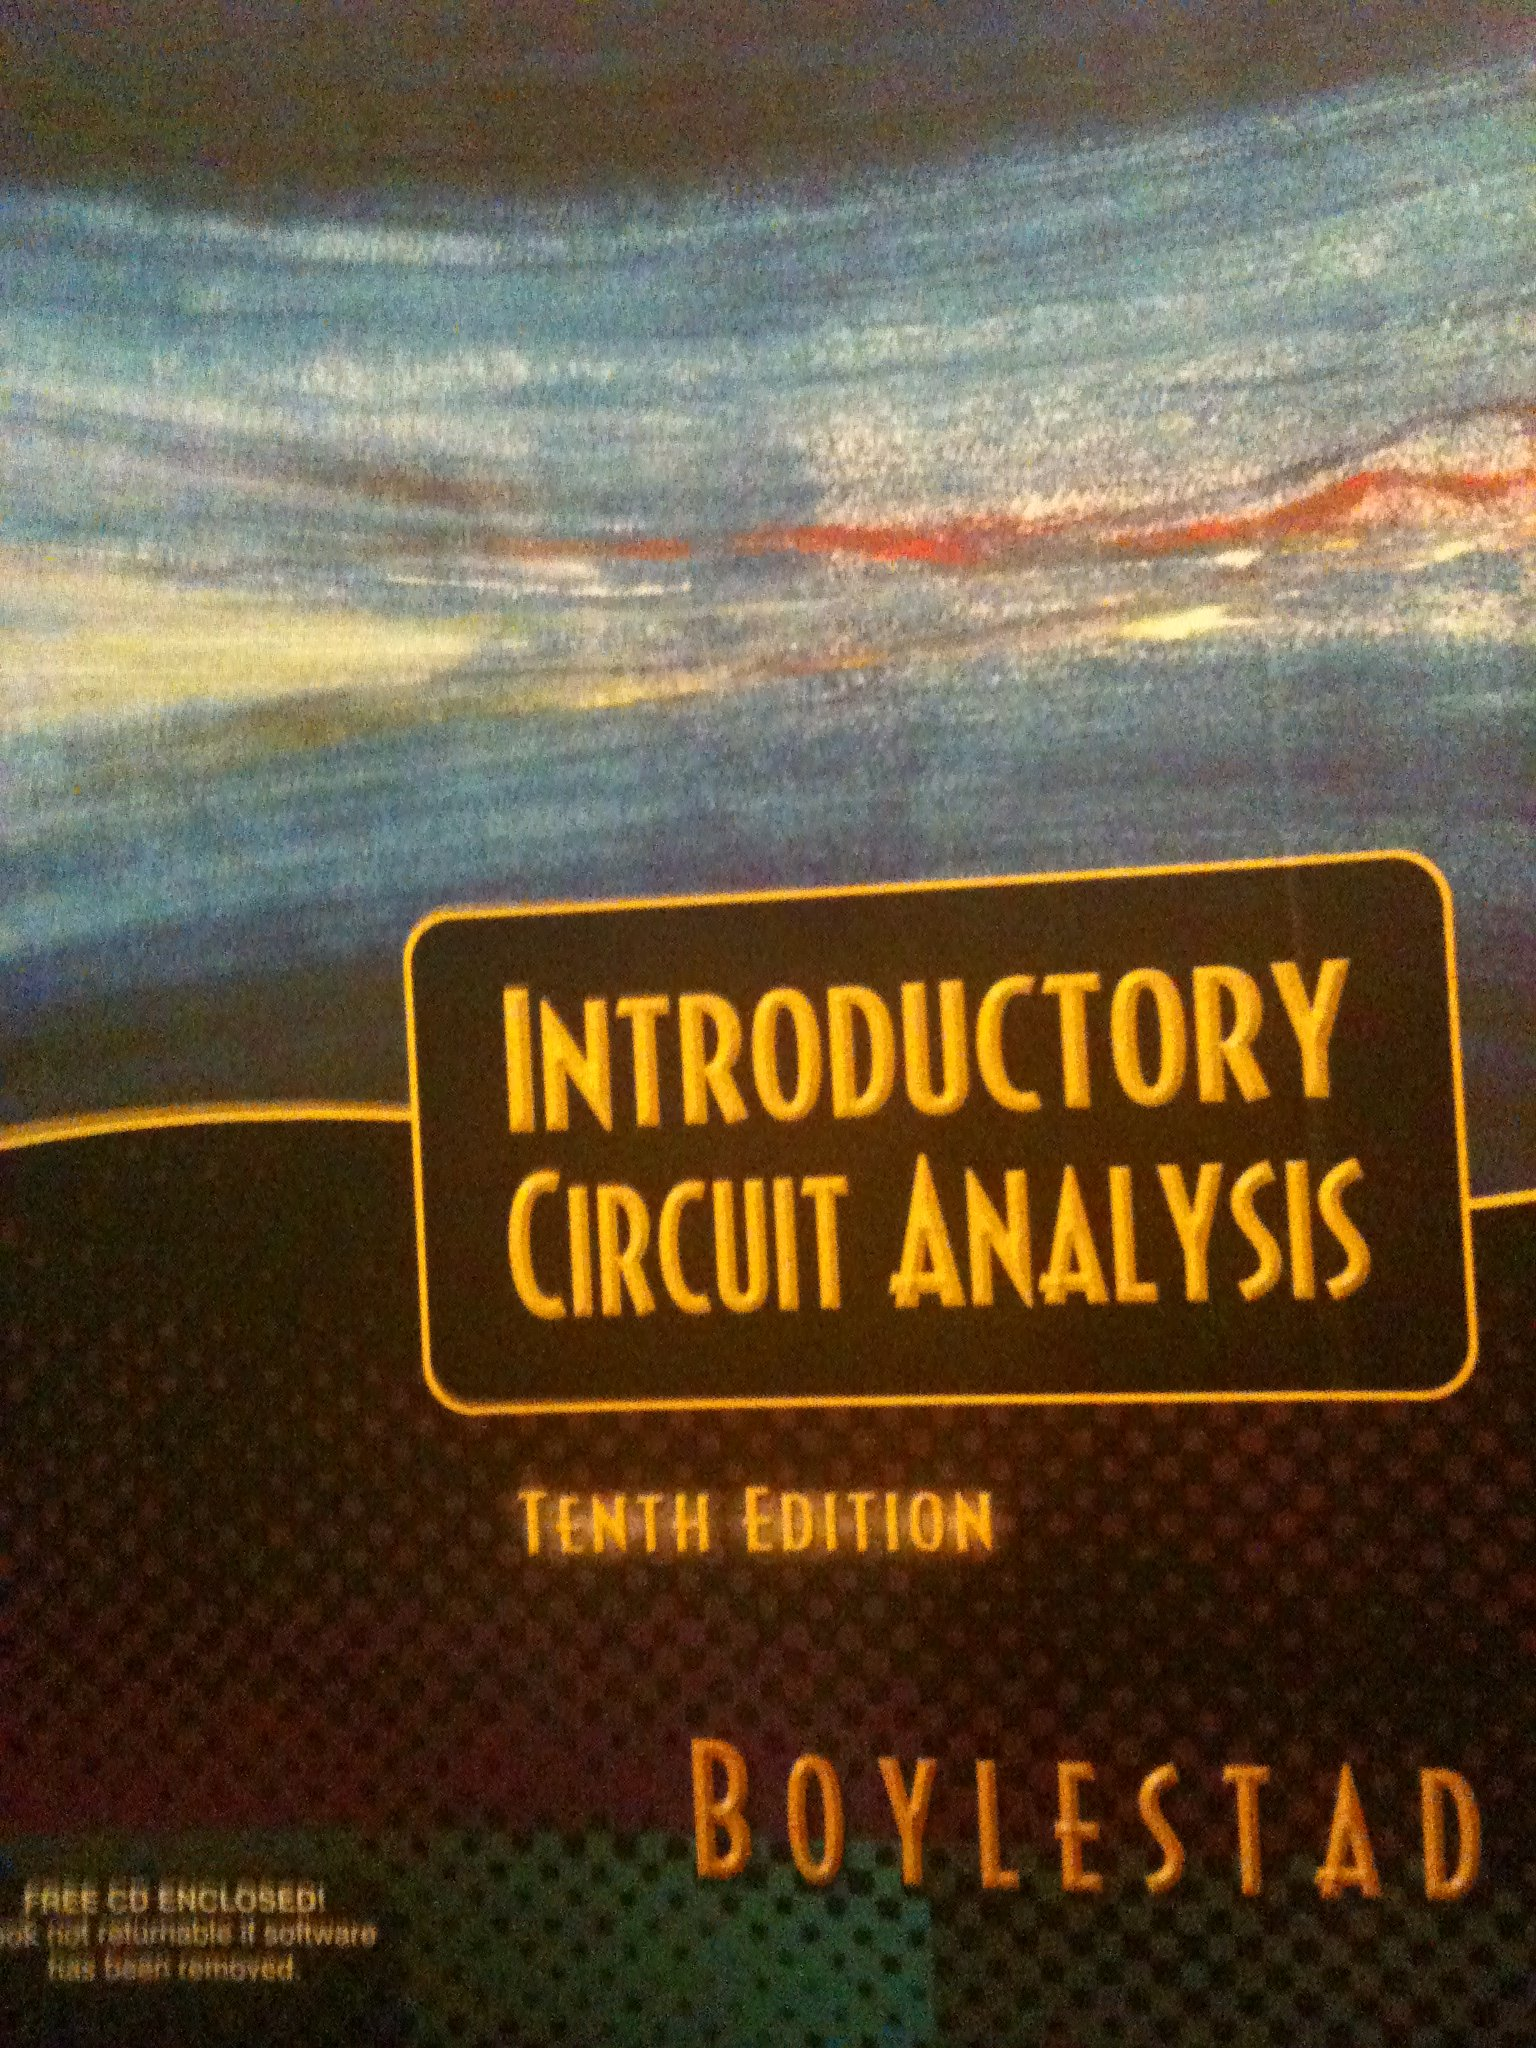 Introductory Circuit Analysis 10th Edition Pdf